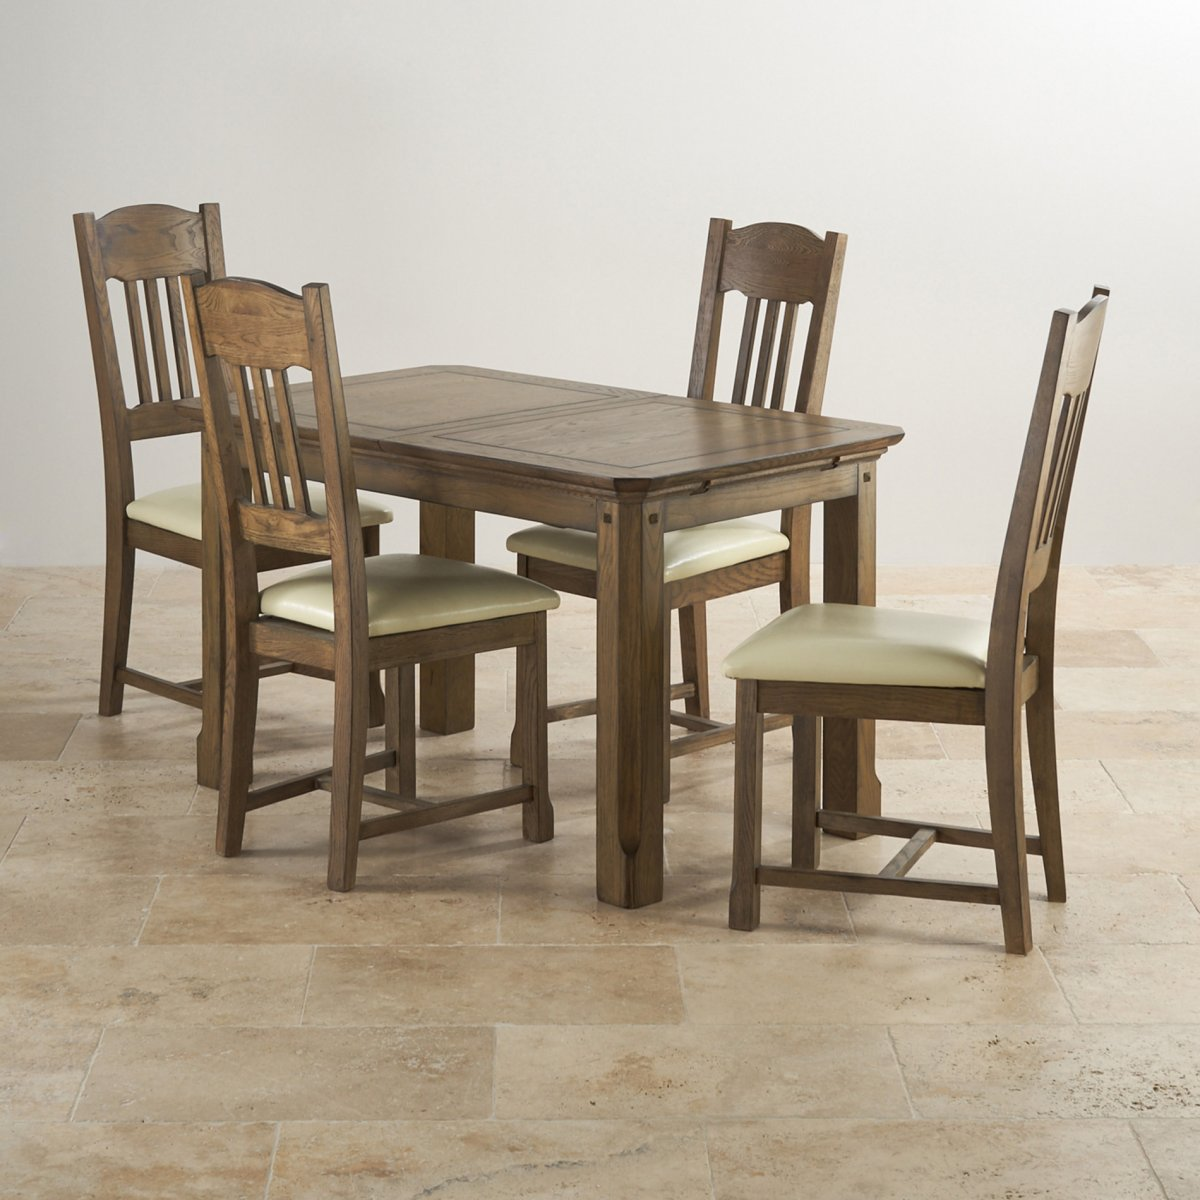 Oak Dining Sets: Manor House Extending Dining Set In Oak: Table + 4 Chairs